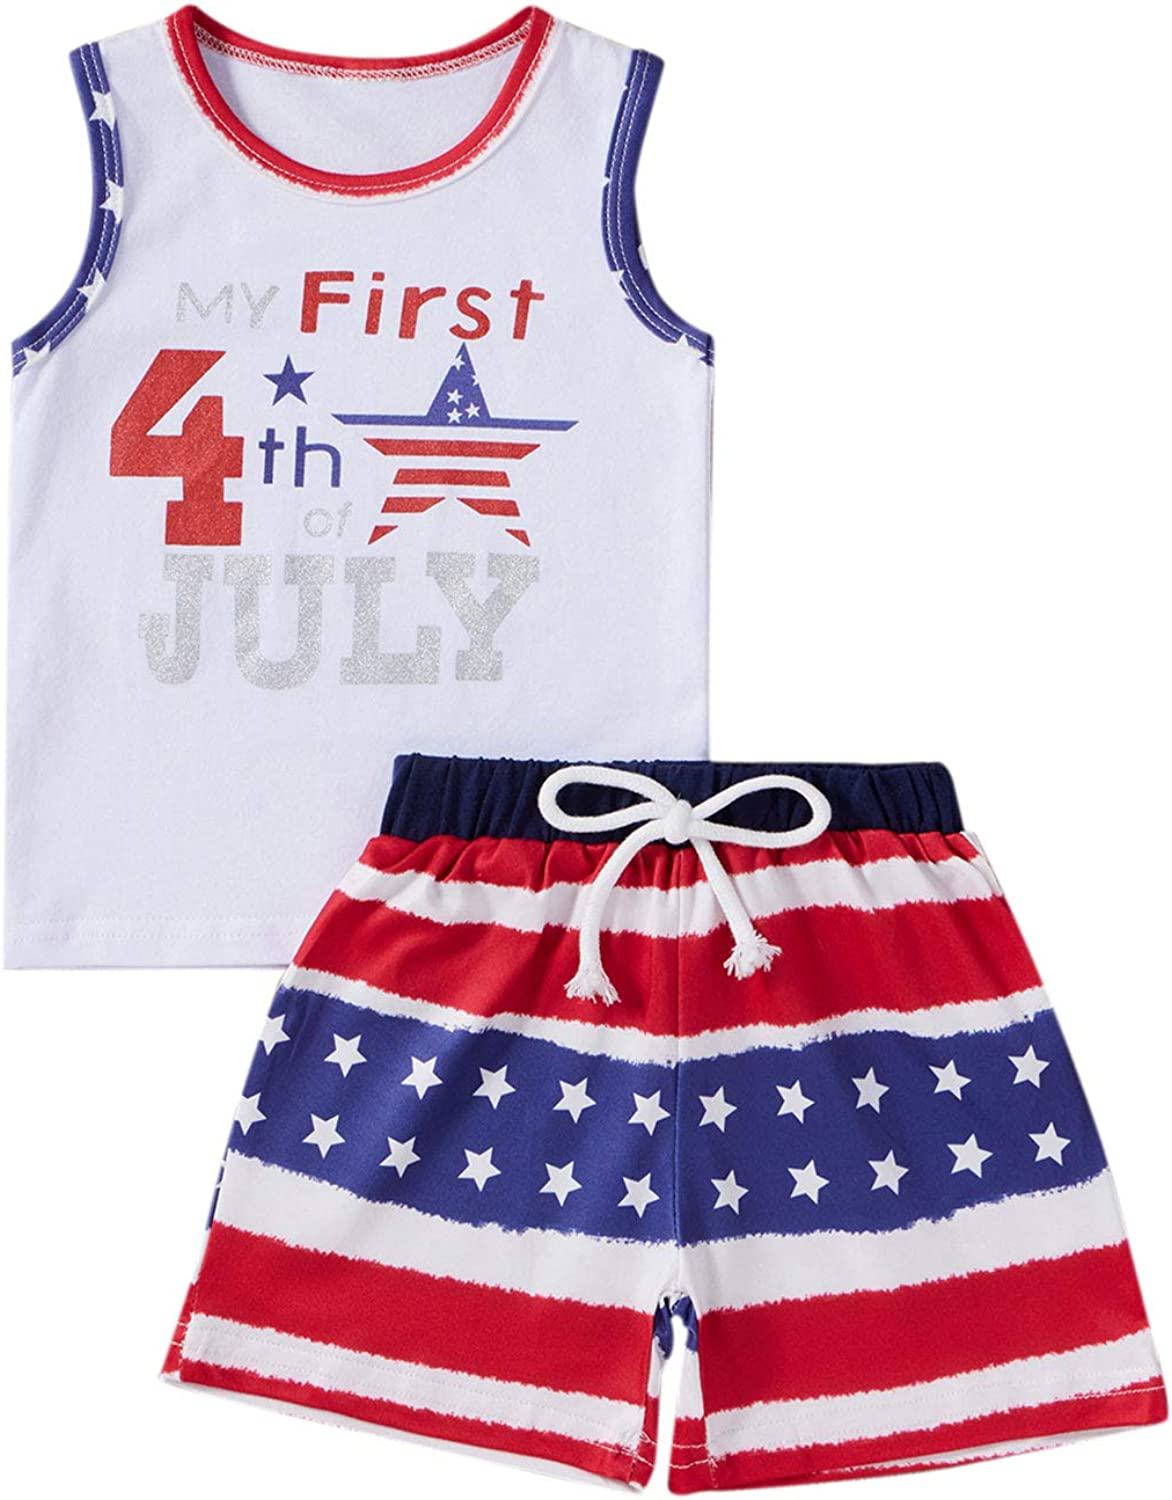 Hekkomird Newborn Baby Boys Girls My First 4th of July Outfits Flag Stars Stripes Shorts Set Independence Day Clothes